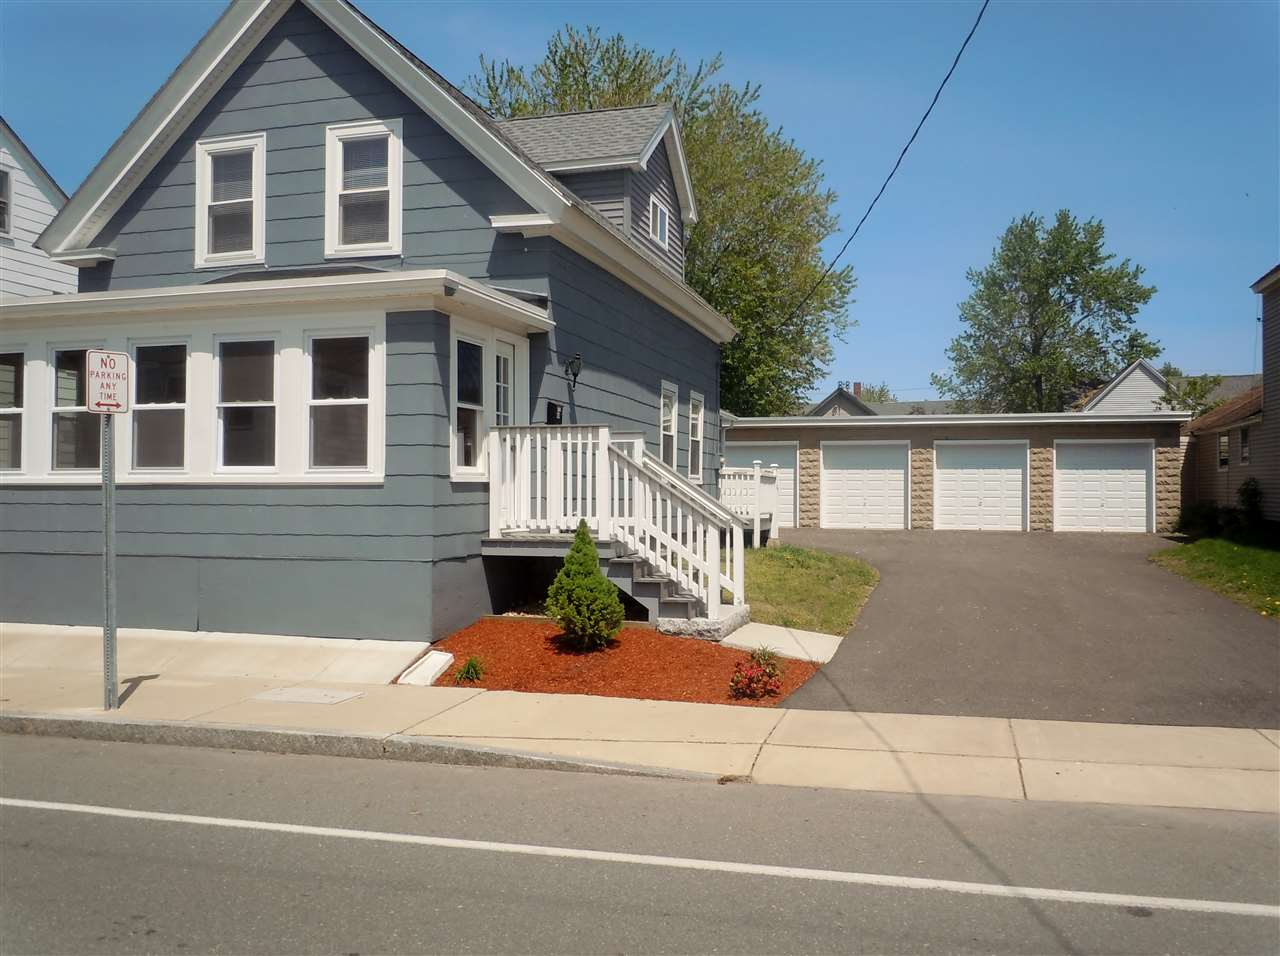 Photo of 44 Palm Street Nashua NH 03060